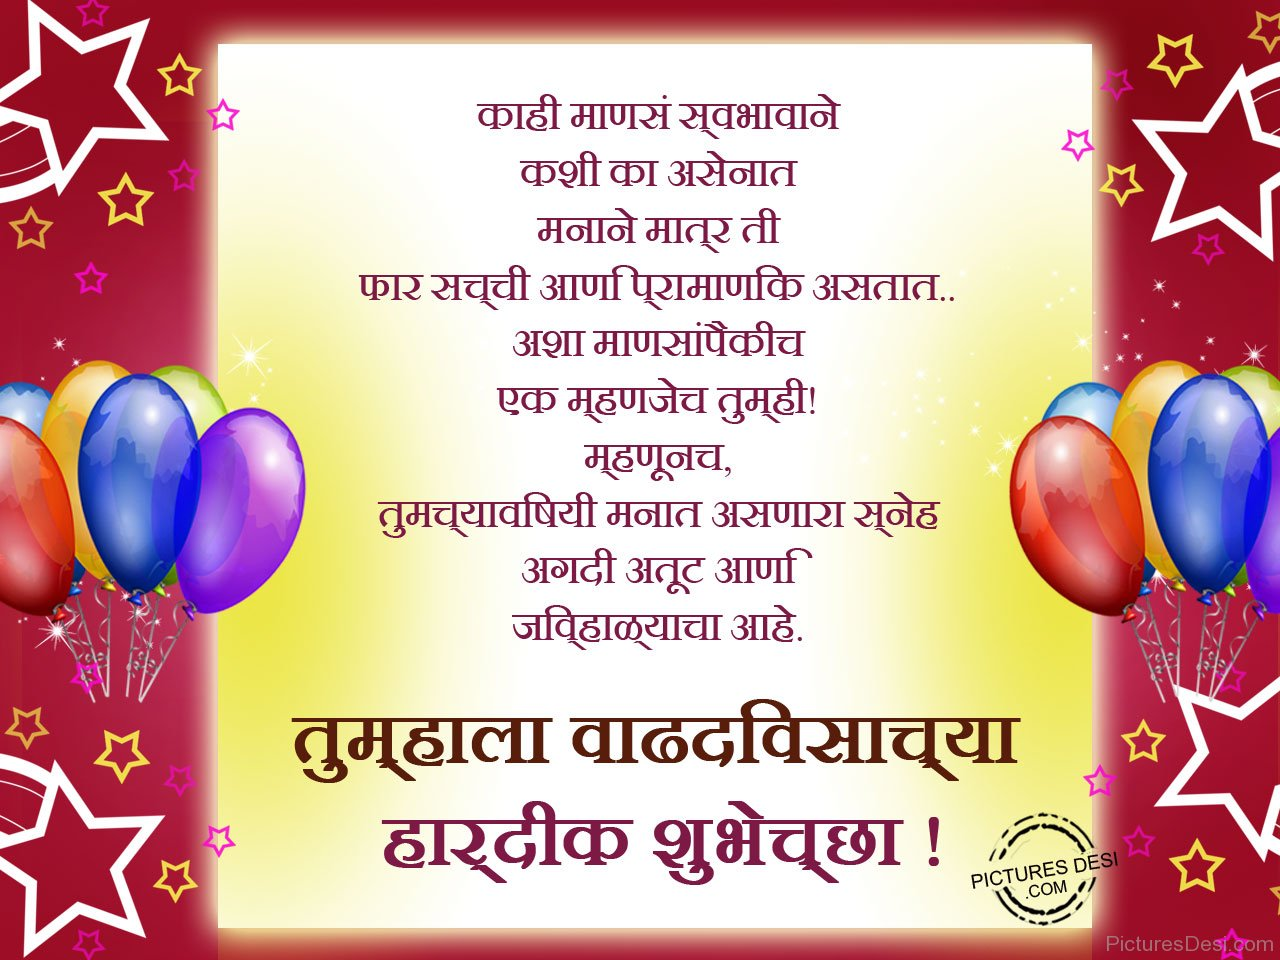 325 Happy Birthday Wishes In Marathi 2020